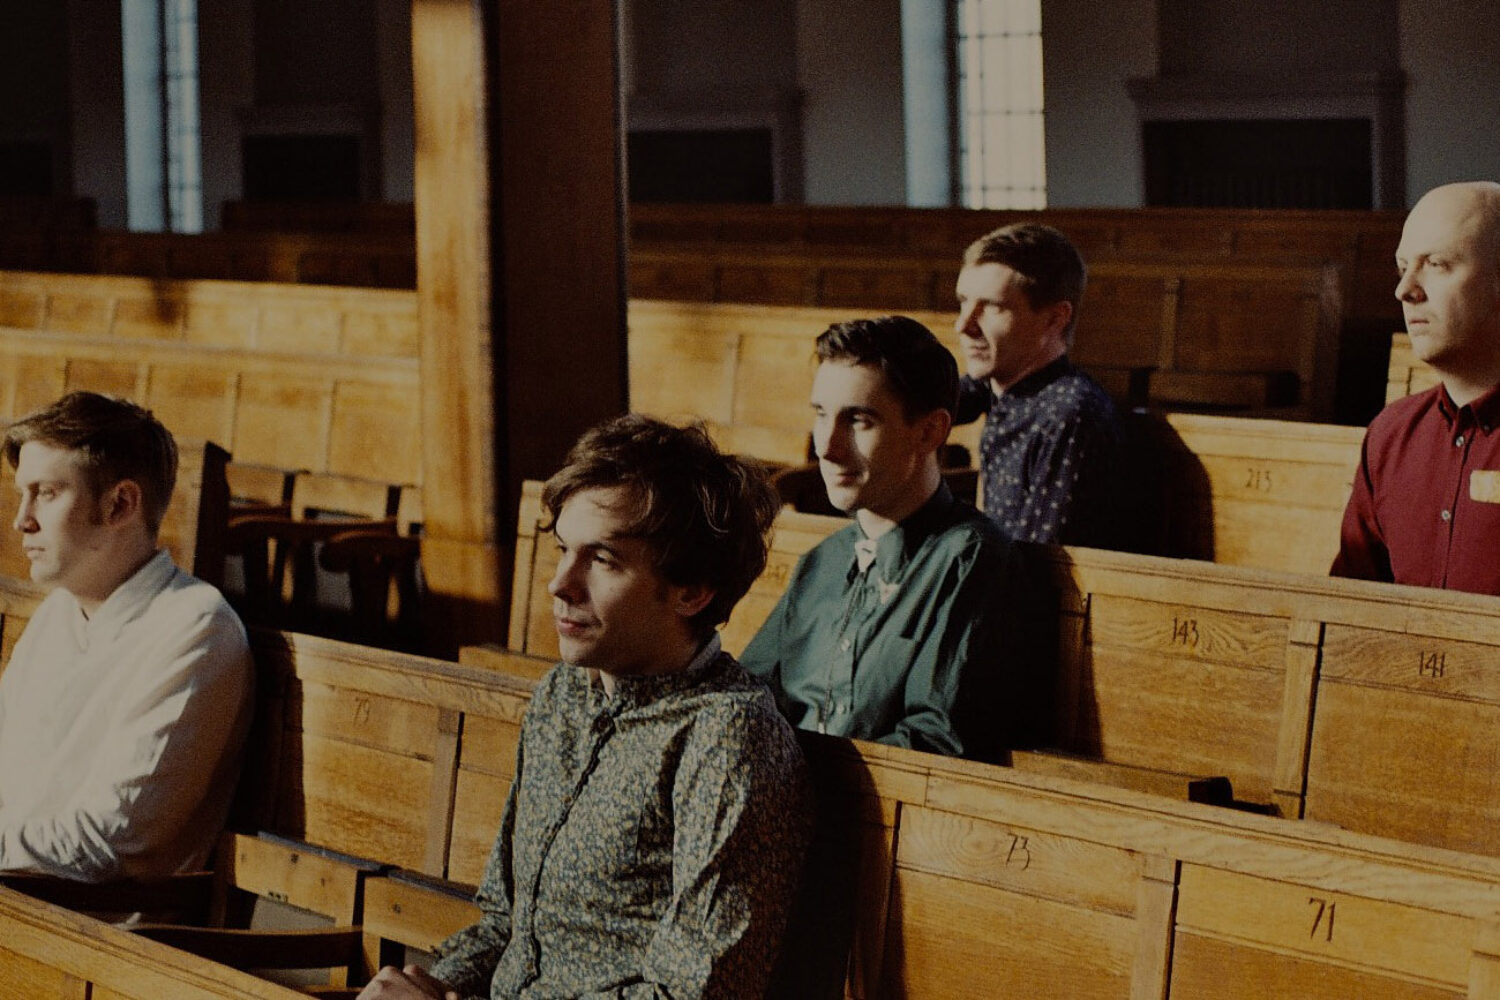 Outfit share video for 'Framed', confirm UK and European tour dates for September